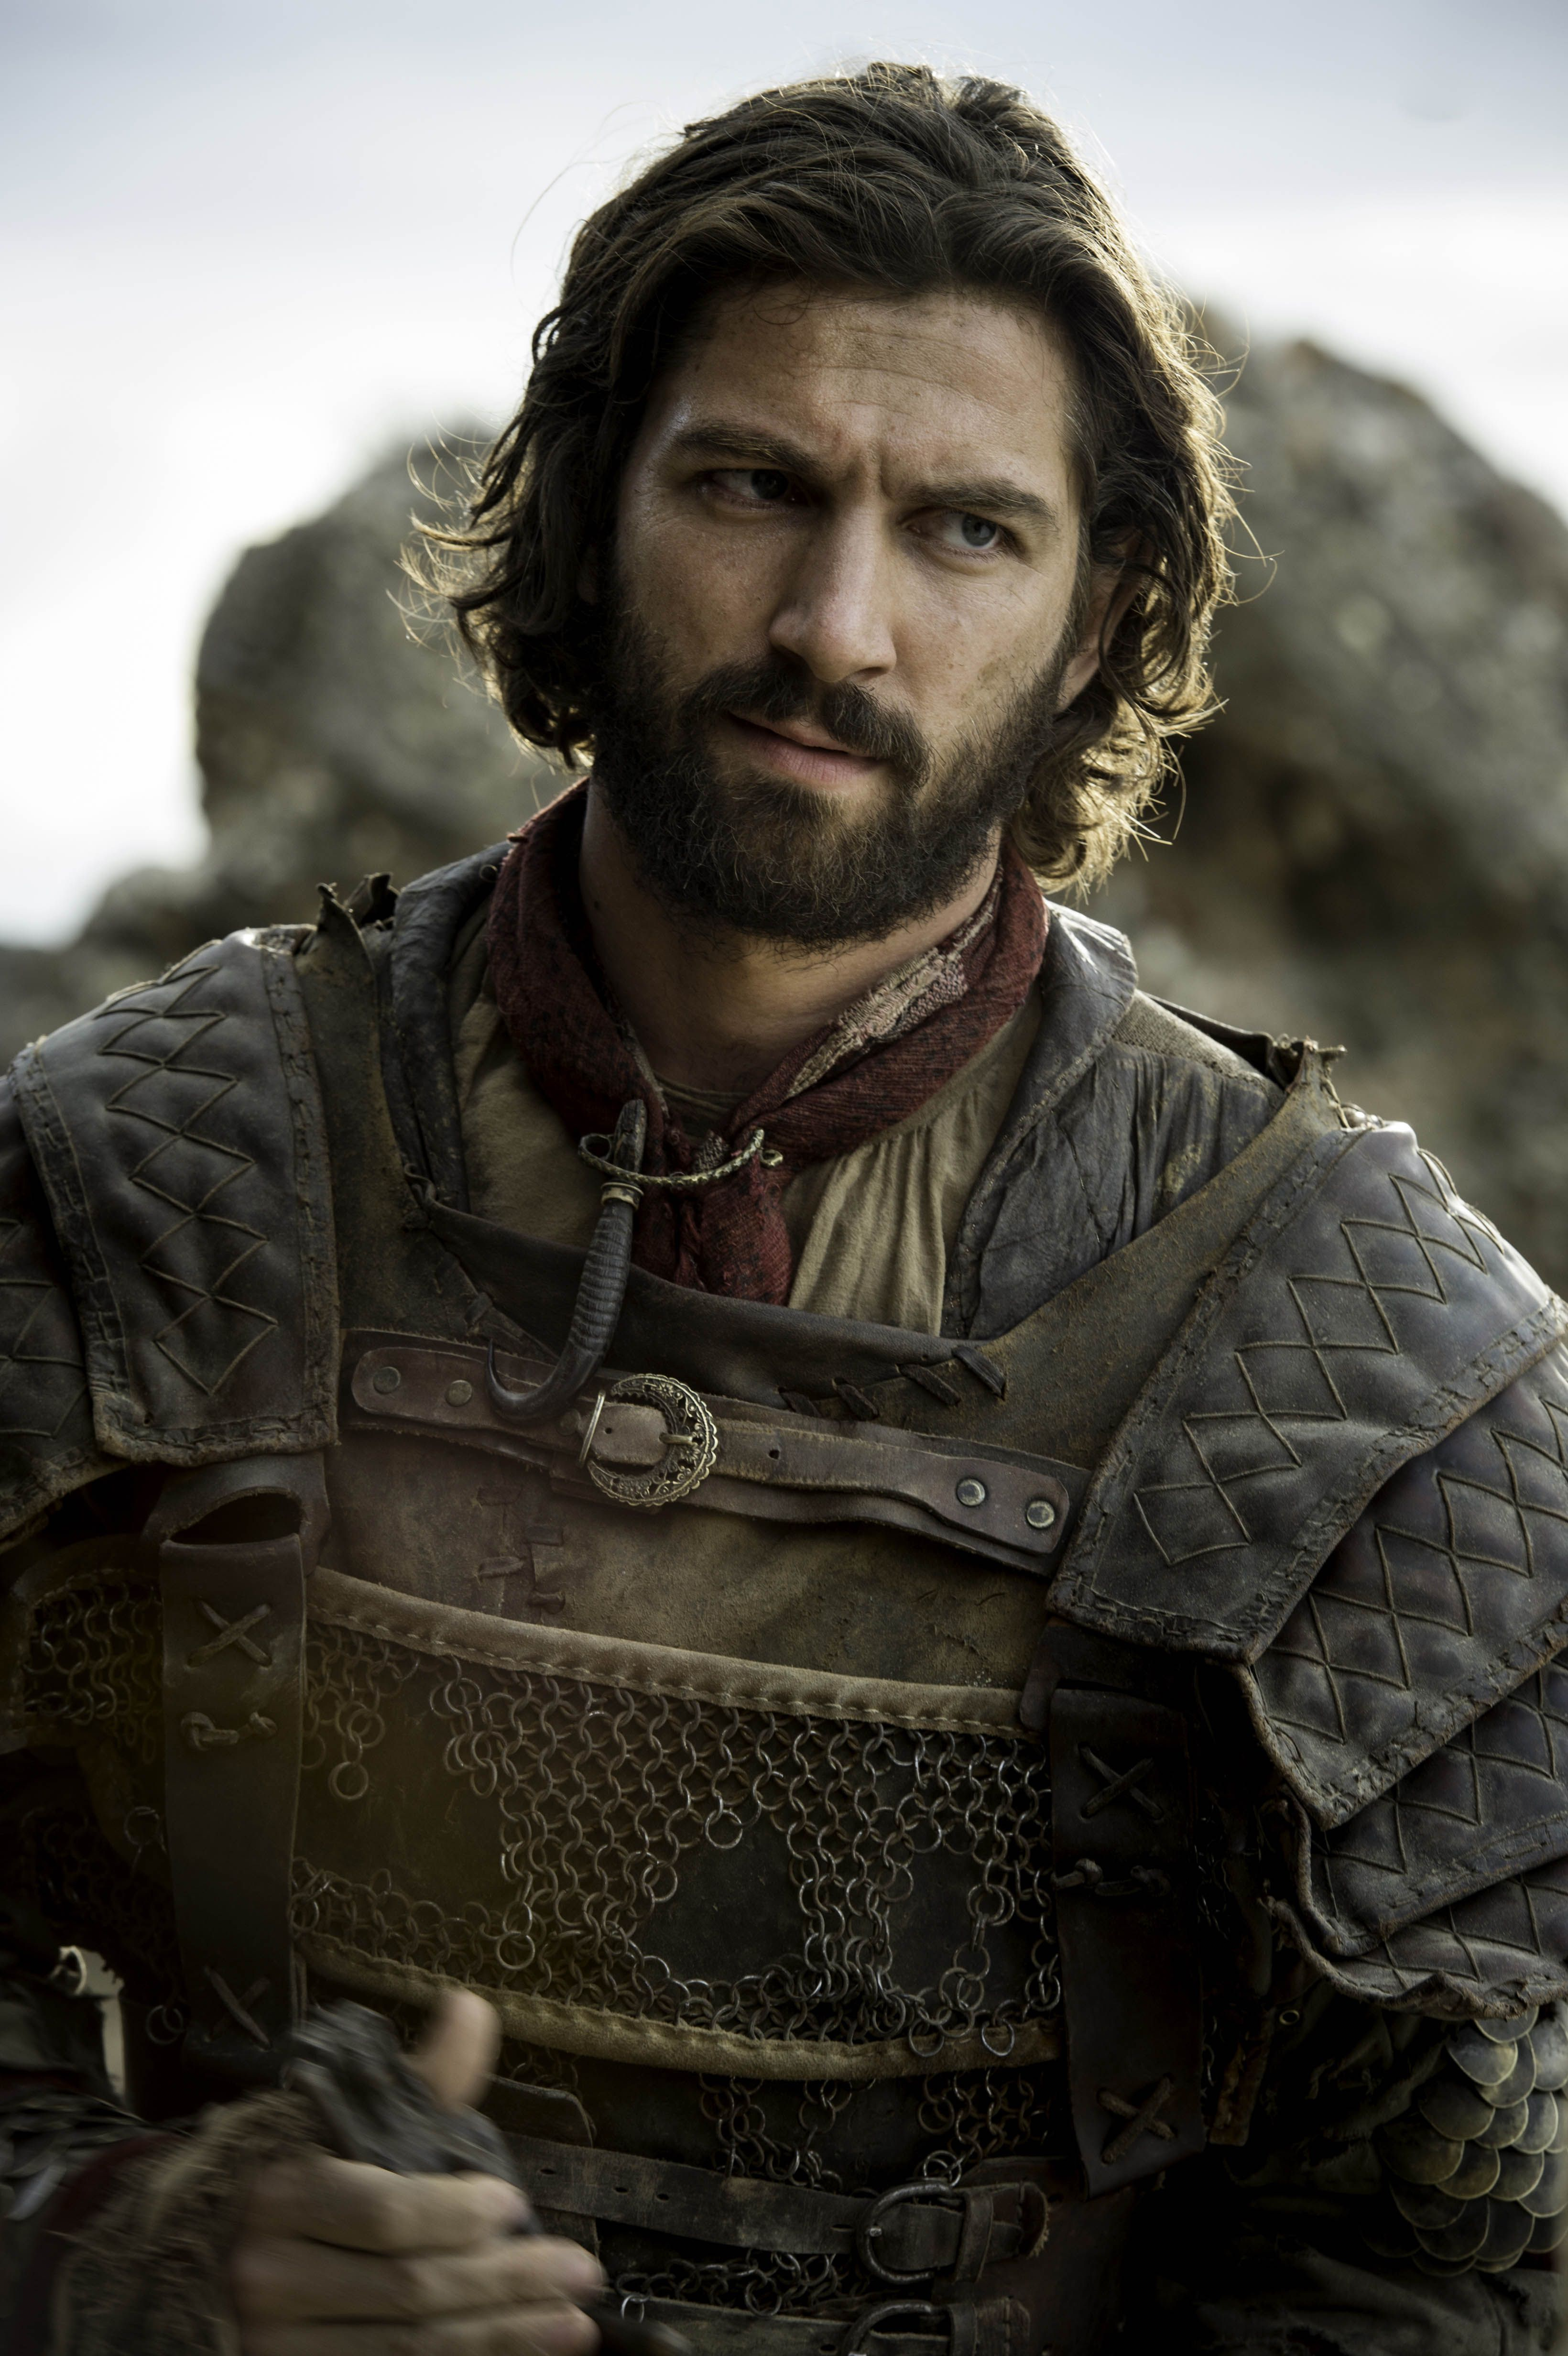 Game Of Thrones Personnage : thrones, personnage, Daario, Naharis, Thrones, Personnages,, Thrones,, Costumes, Cinéma